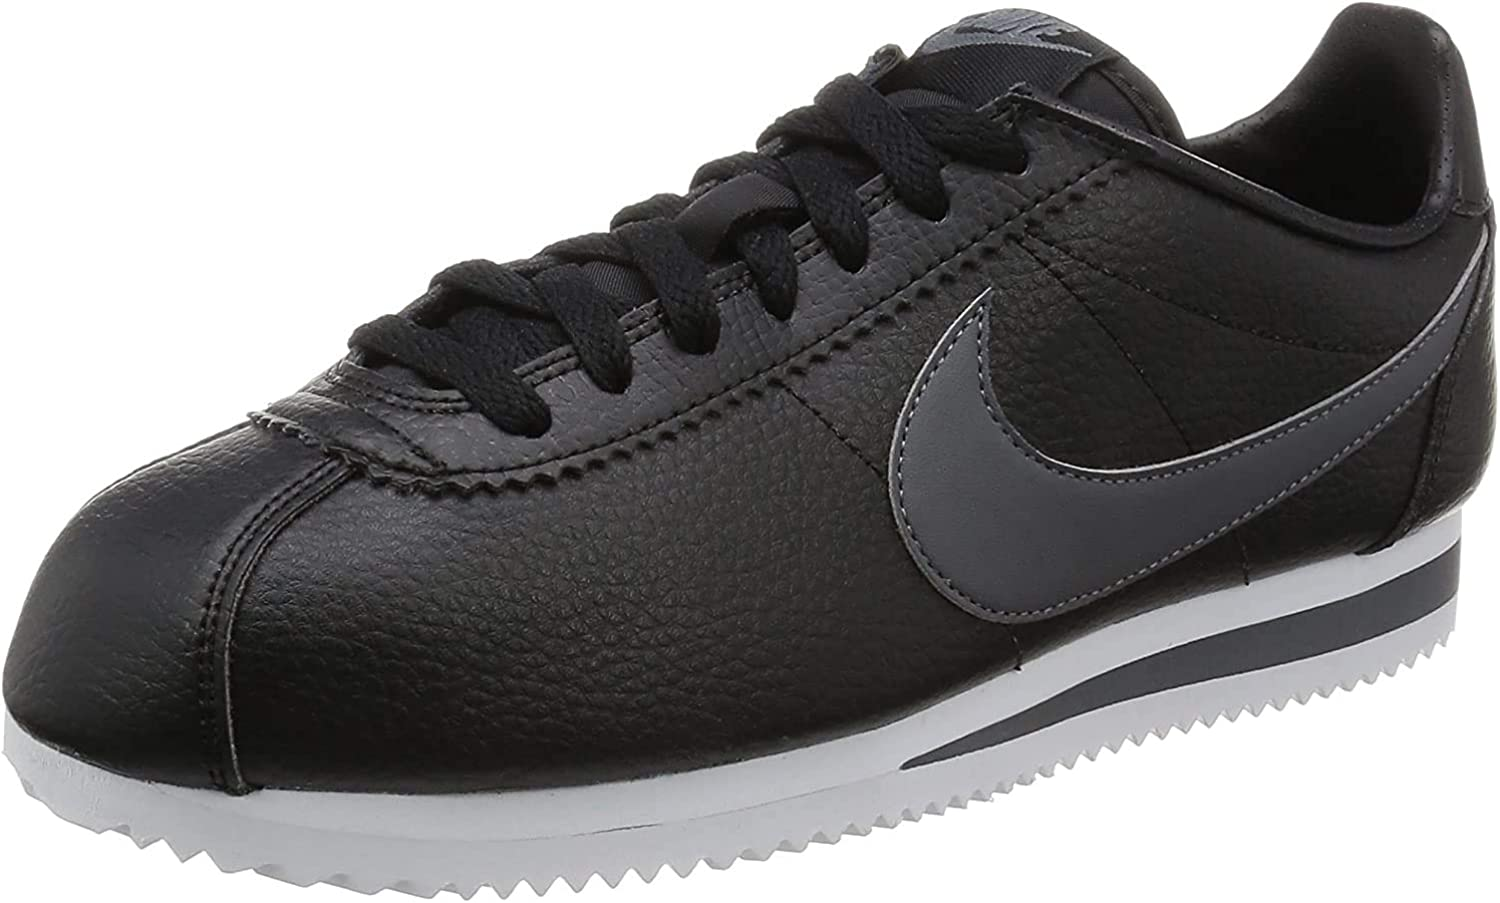 Nike Classic Cortez Leather, Chaussures de Running Homme Multicolore Noir Gris Blanc Black Dark Grey White